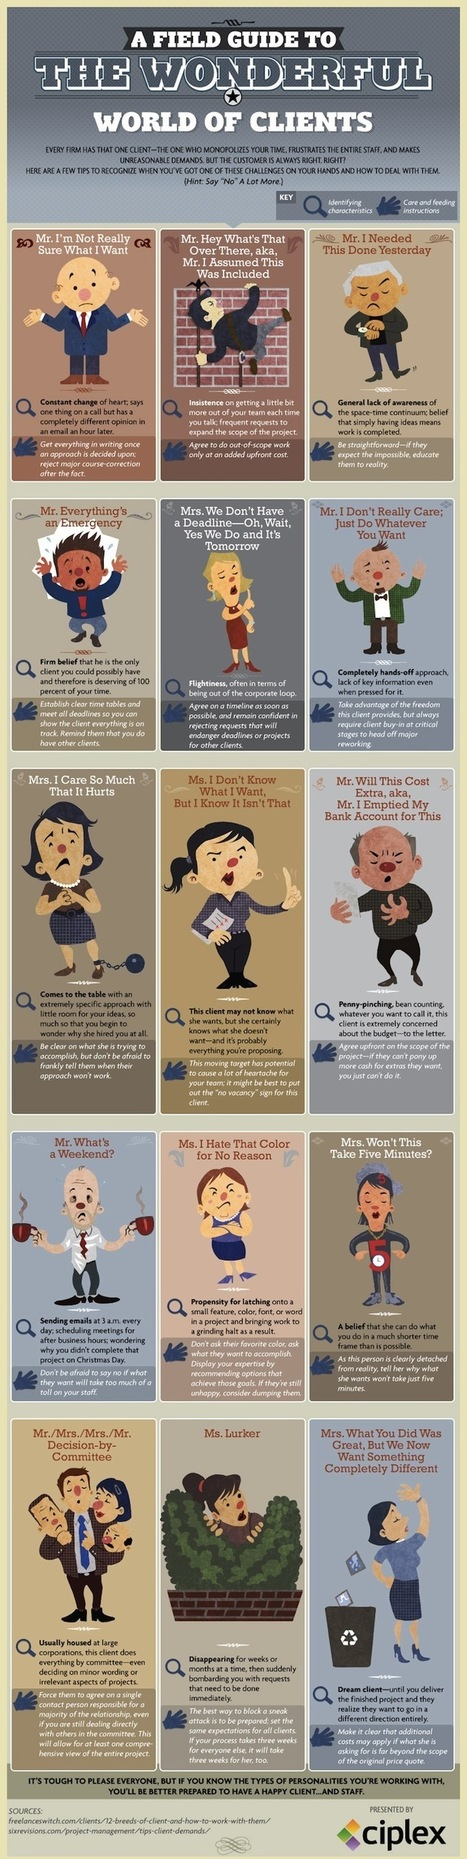 A Field Guide to the Wonderful World of Clients [INFOGRAPHIC] | Content Curation: Emerging Career | Scoop.it